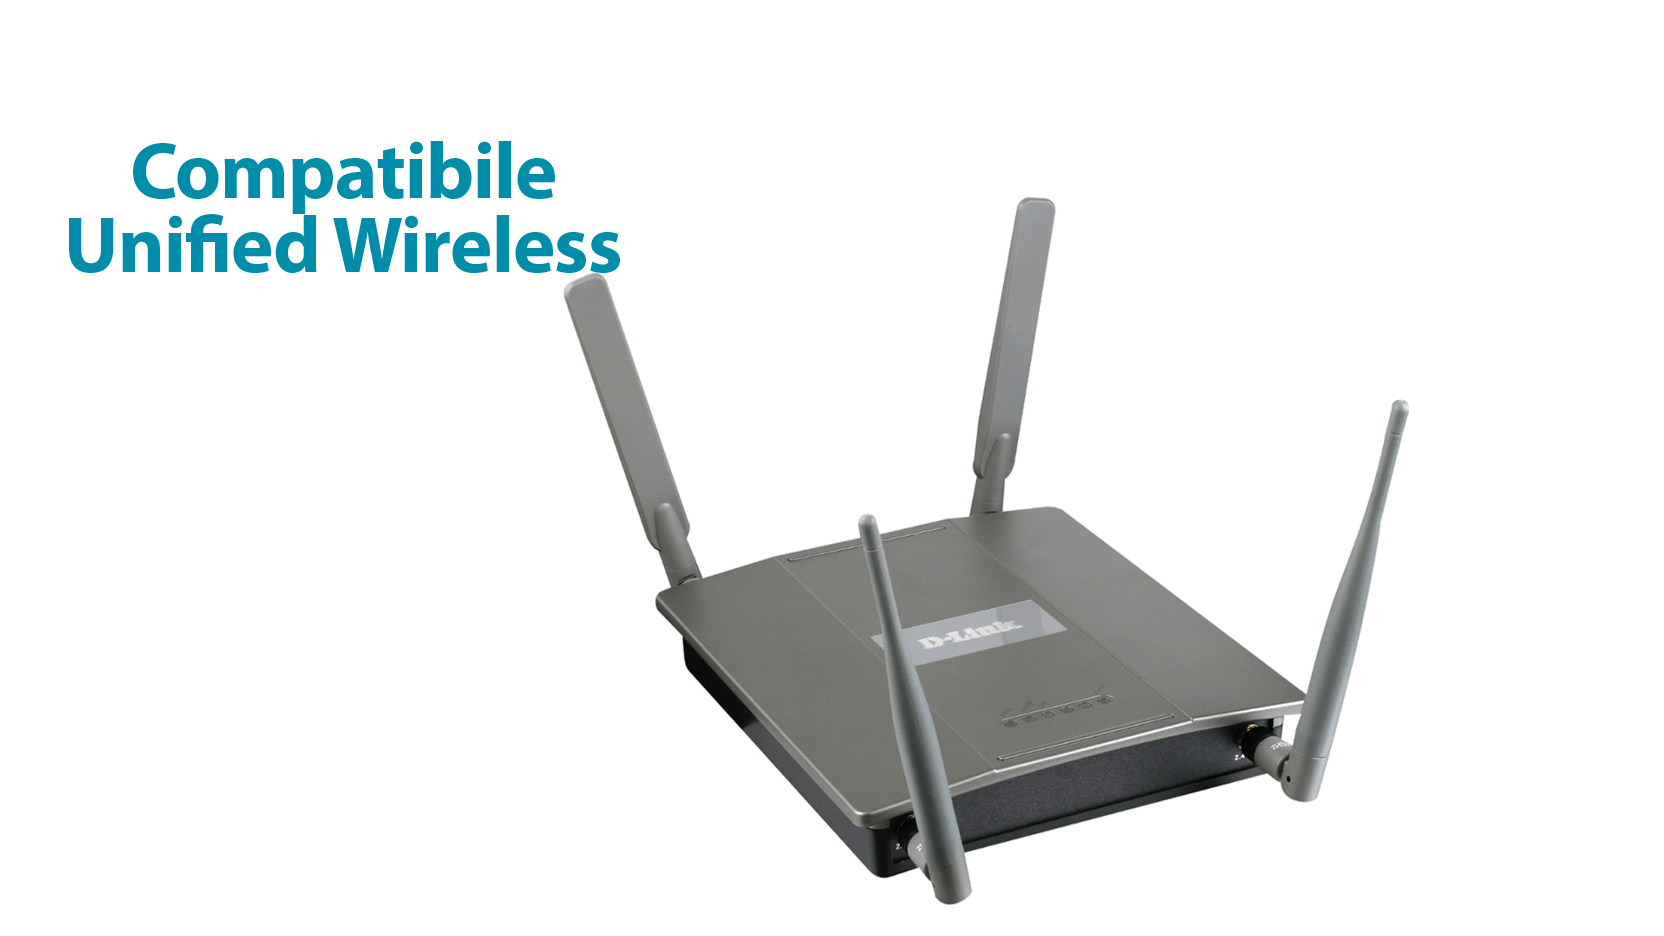 DWL 8600AP Compatibile Unified Wireless